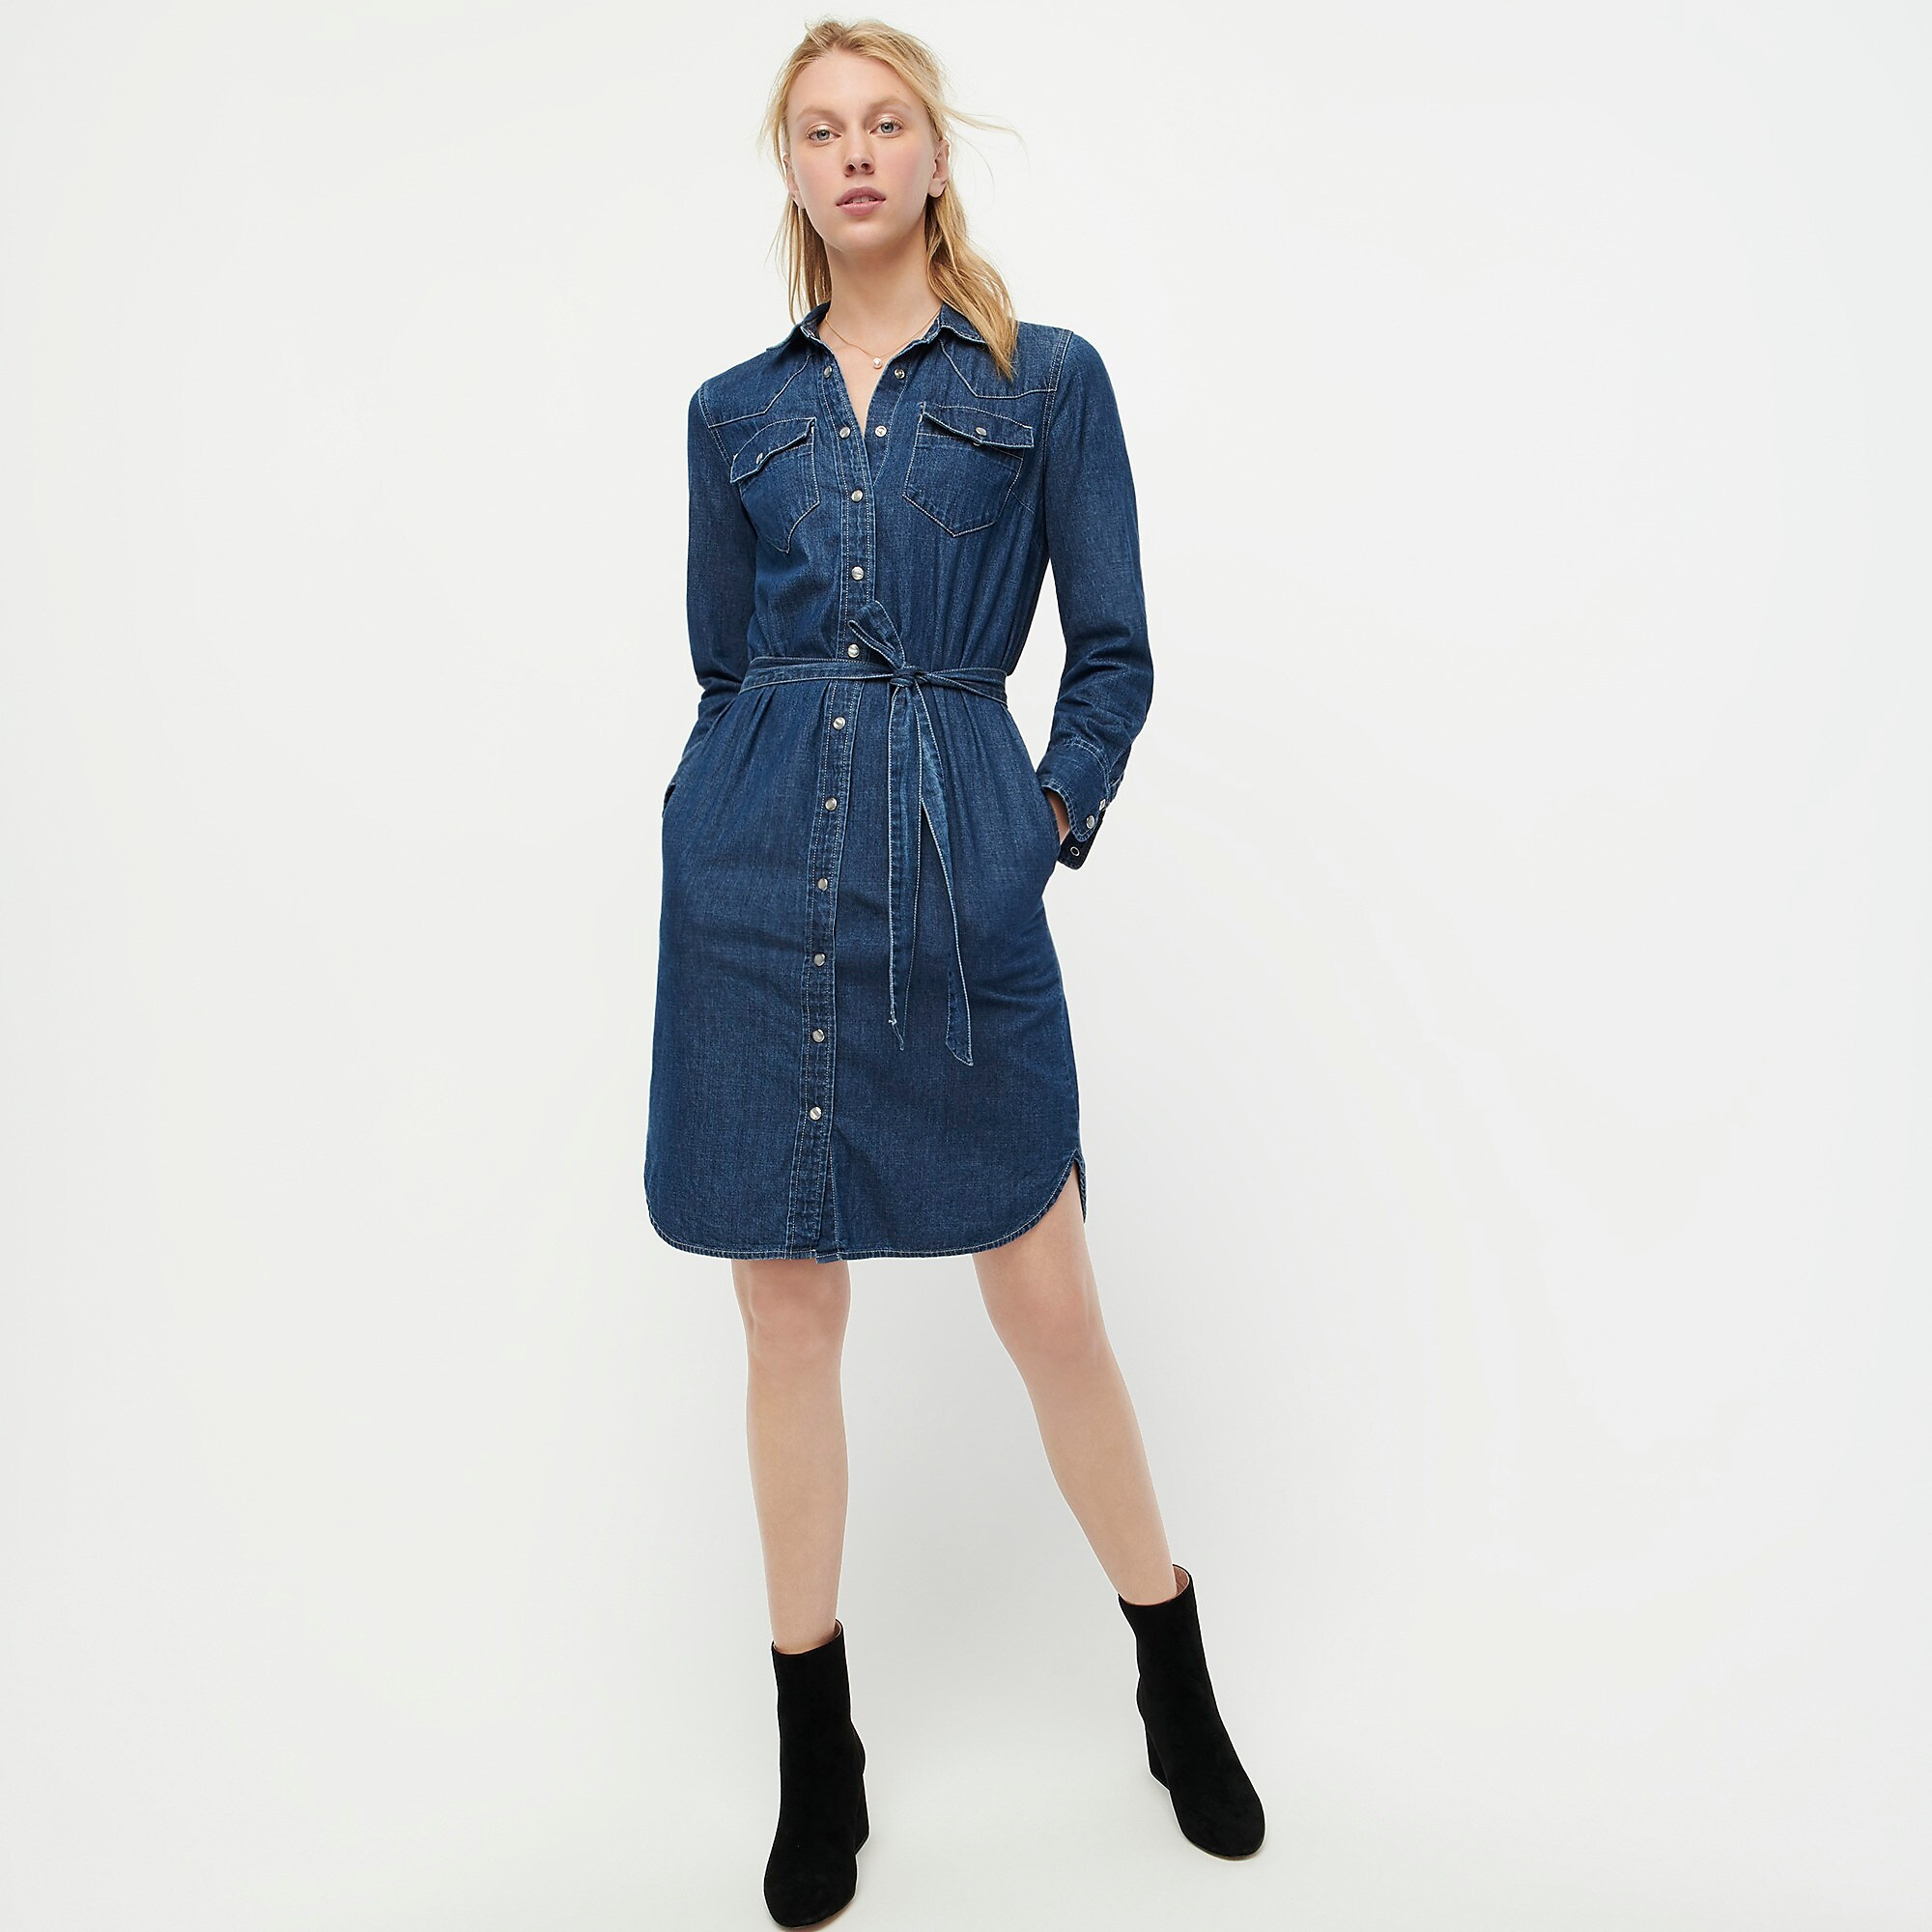 Meghan Markle's Denim J.Crew Shirtdress Is Finally Back (but It's About to Sell Out Again)